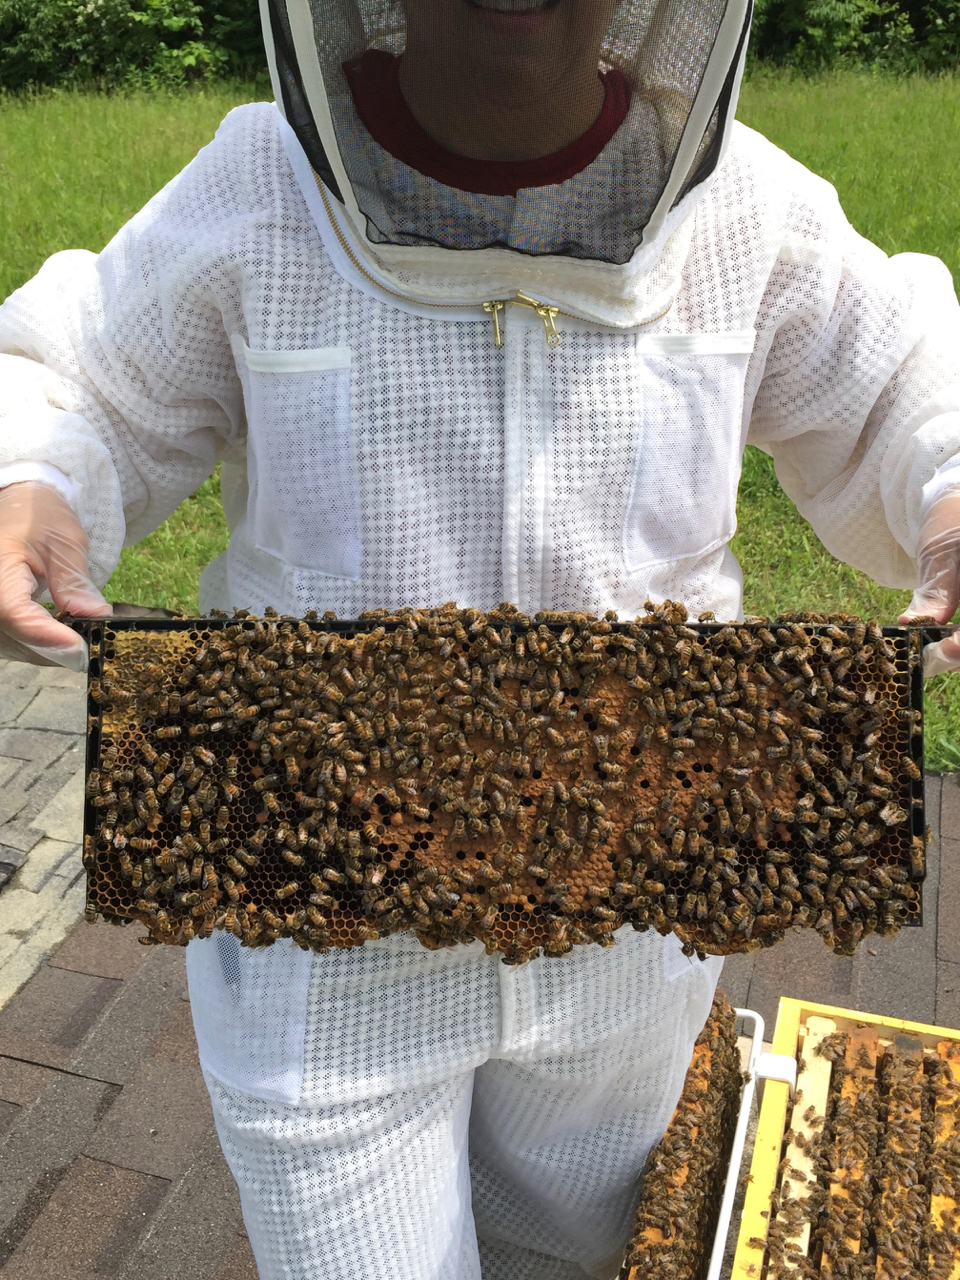 Uncategorized Our Bee Log Beehive Phone Wiring Diagram And This Is Anita Holding One Of The Frames In Yellow Hive Chock Full Bees Good Pattern Brood Pollen Honey Etc